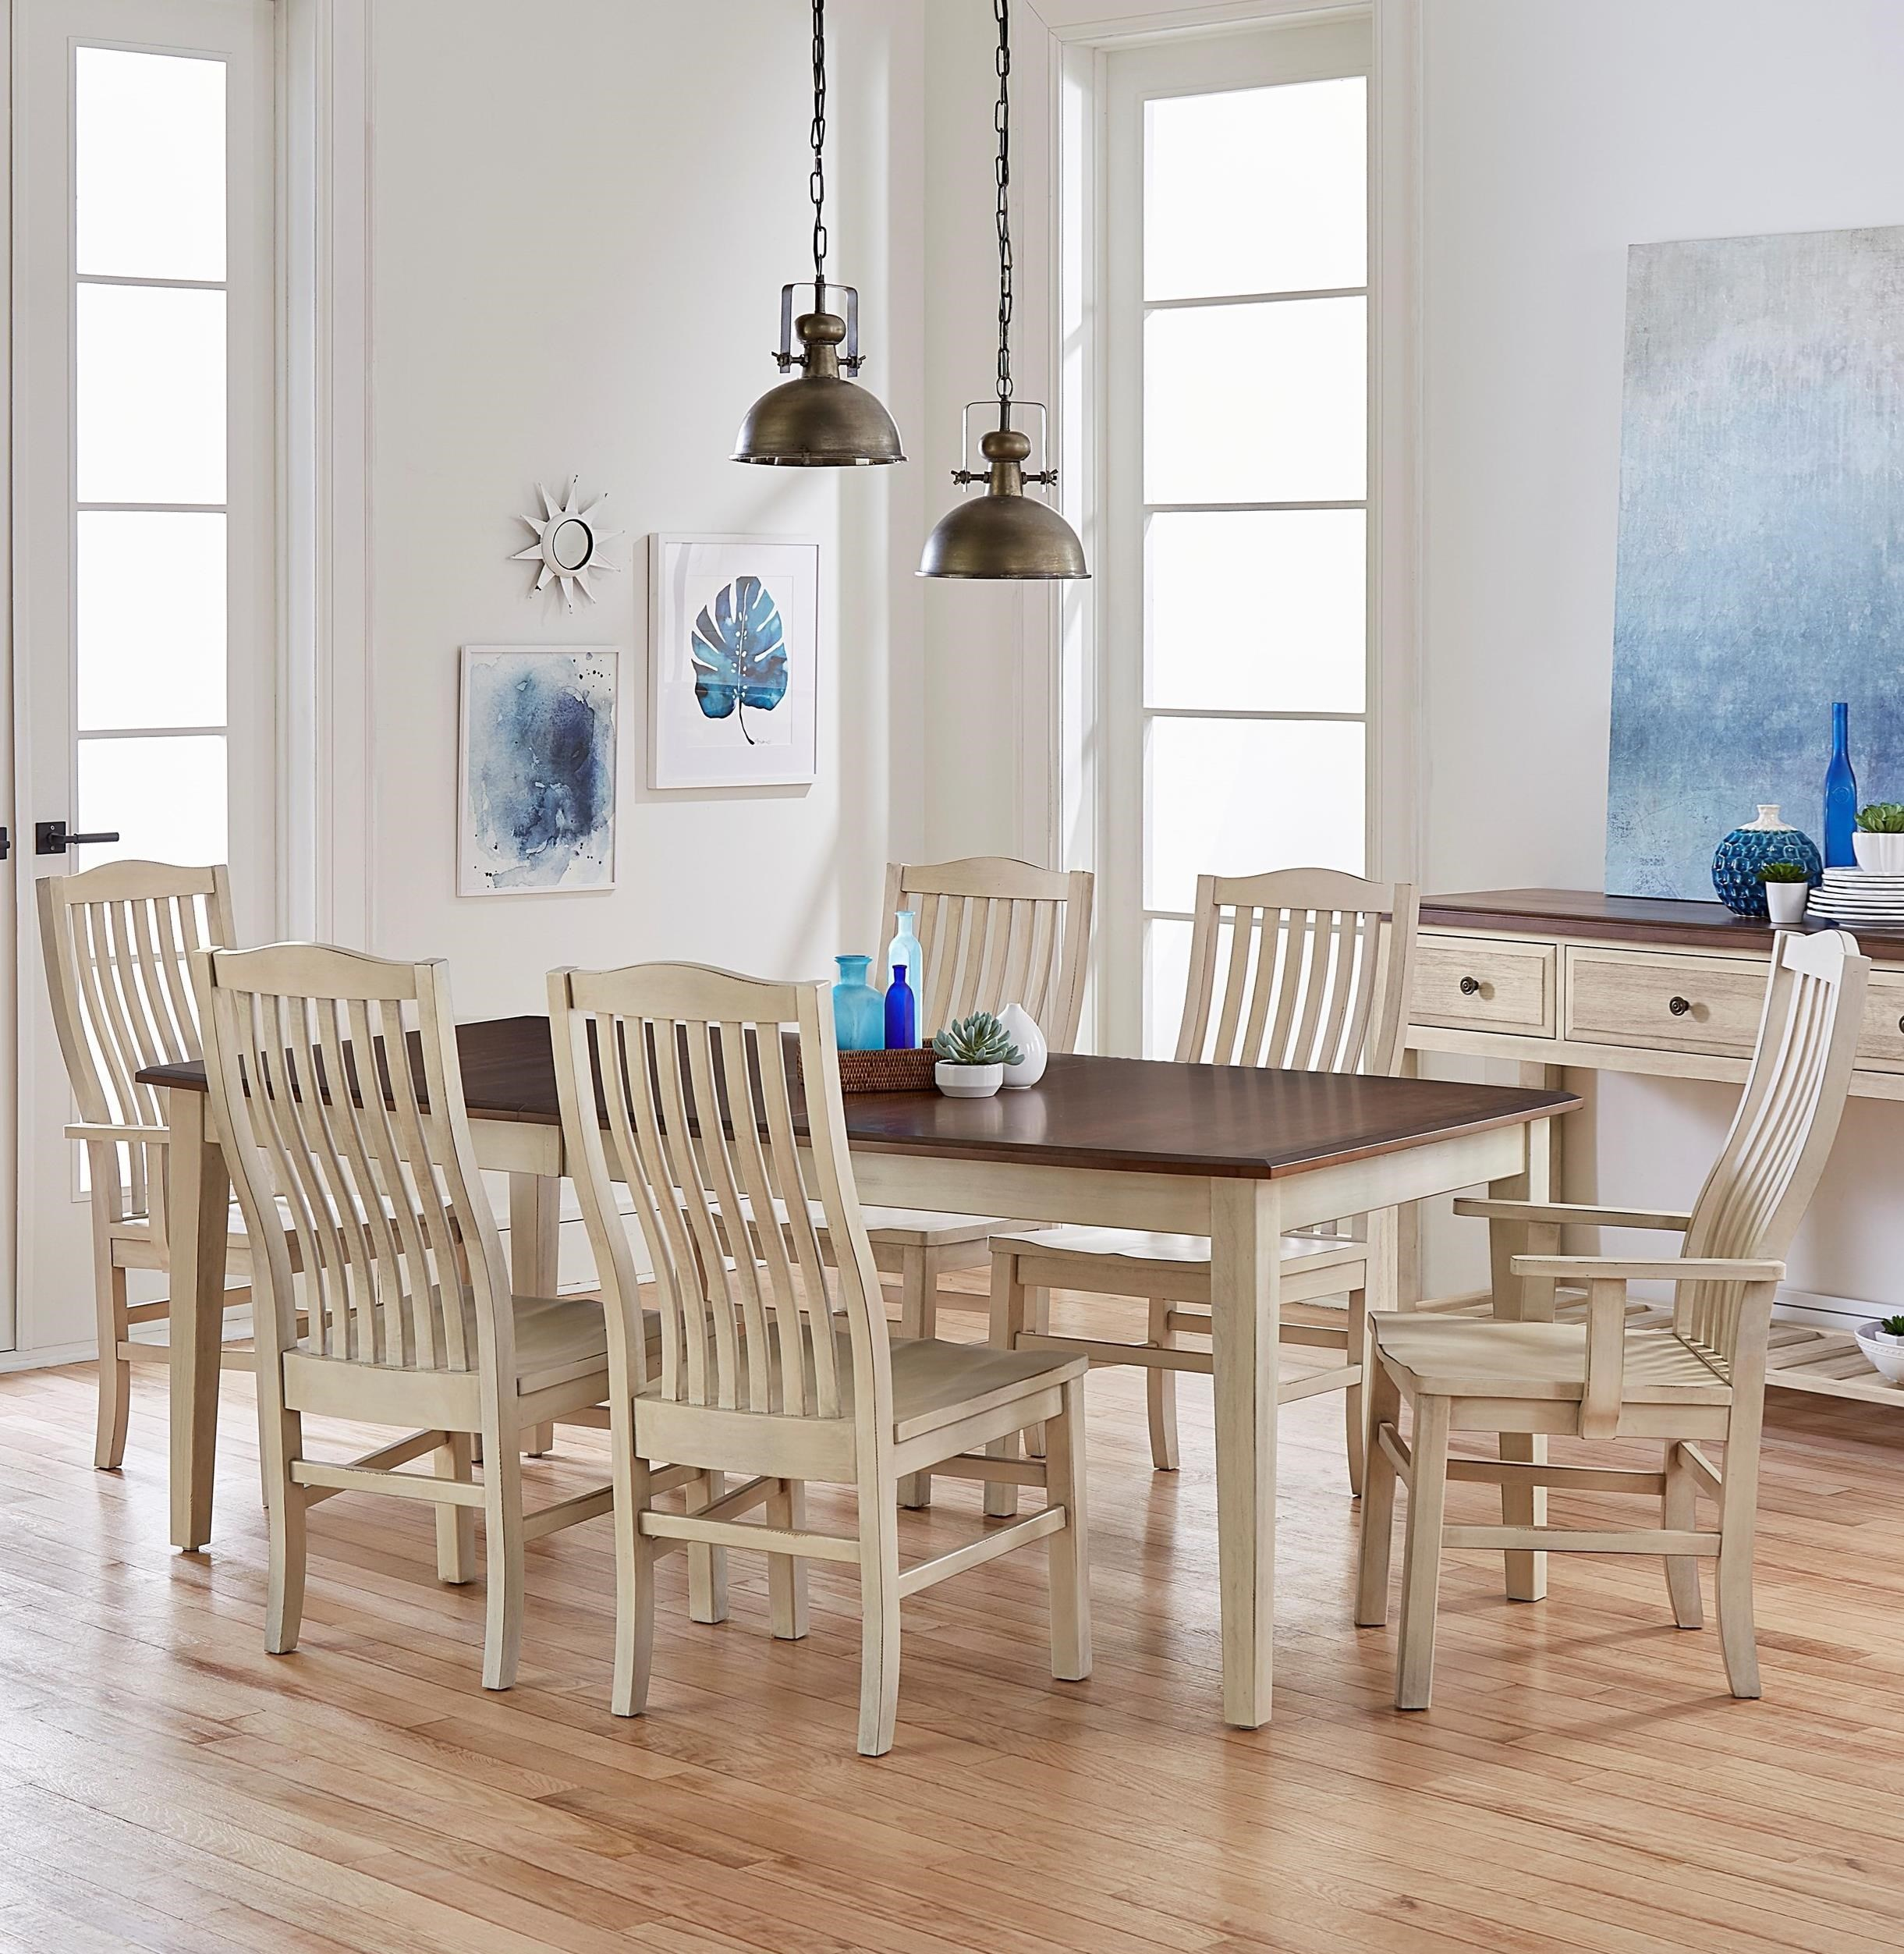 Artisan U0026 Post Simply Dining 7 Piece Solid Cherry Boat Table Set   Belfort  Furniture   Dining 7 (or More) Piece Sets